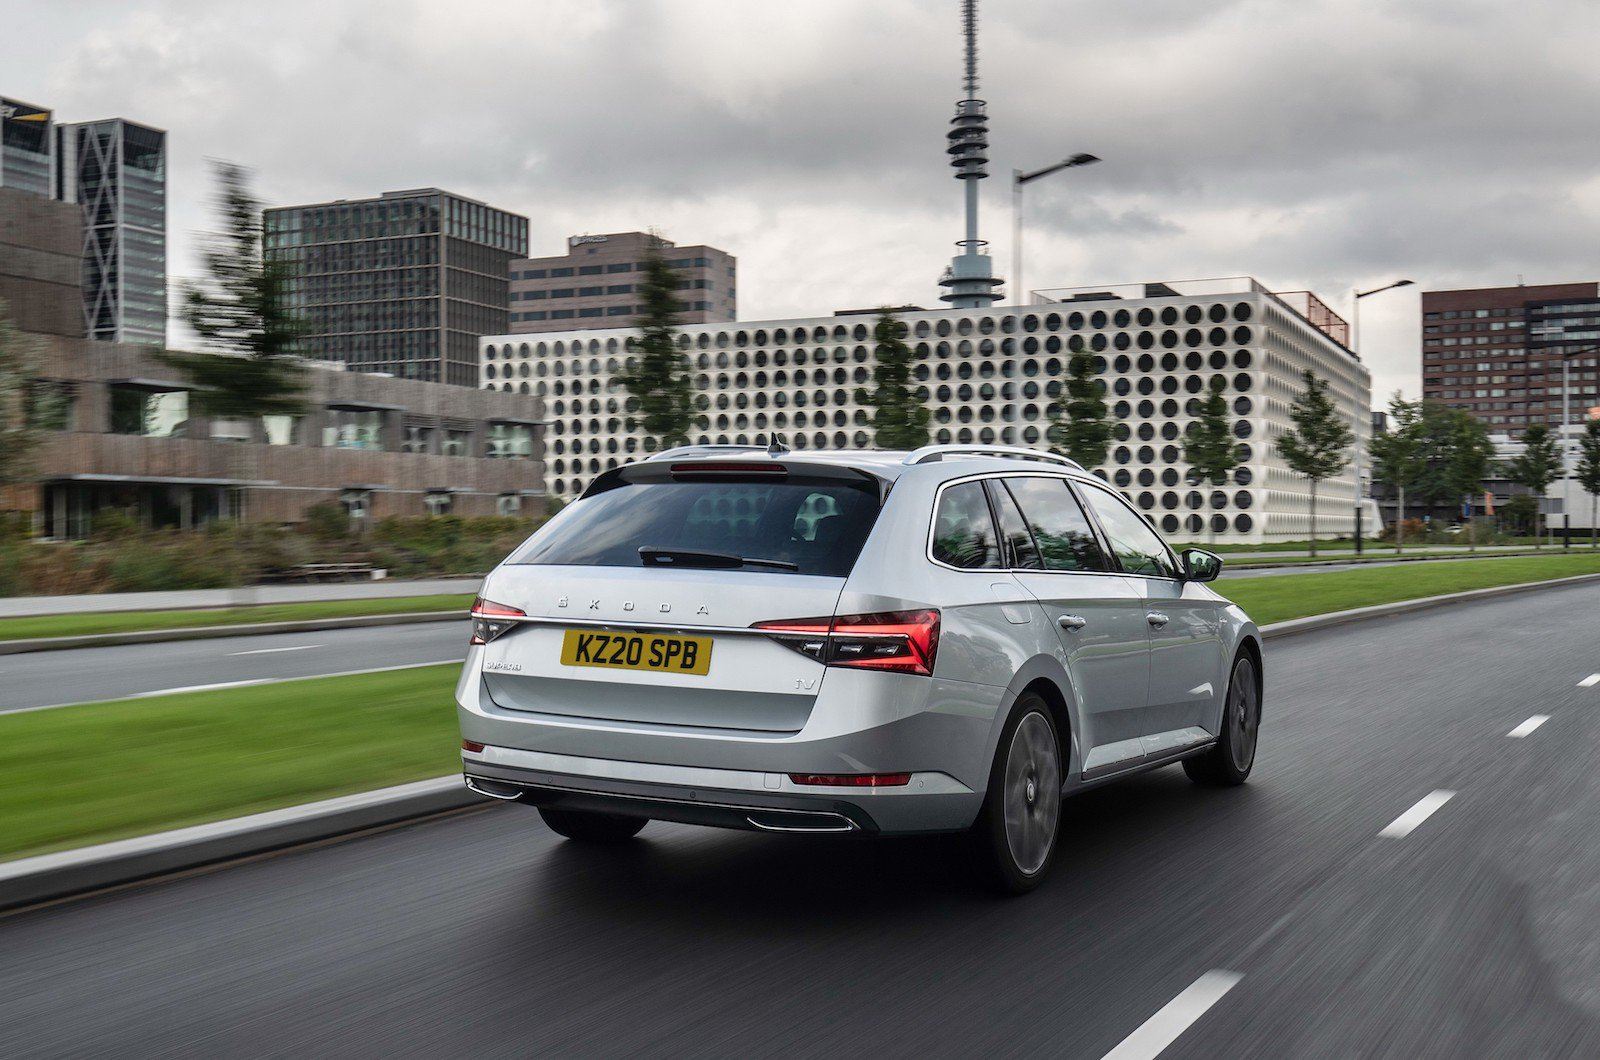 Clever packaging means you get an impressive 450 litres as standard in the Octavia iV hatchback, all the way up to 1,800 litres in the Superb iV estate